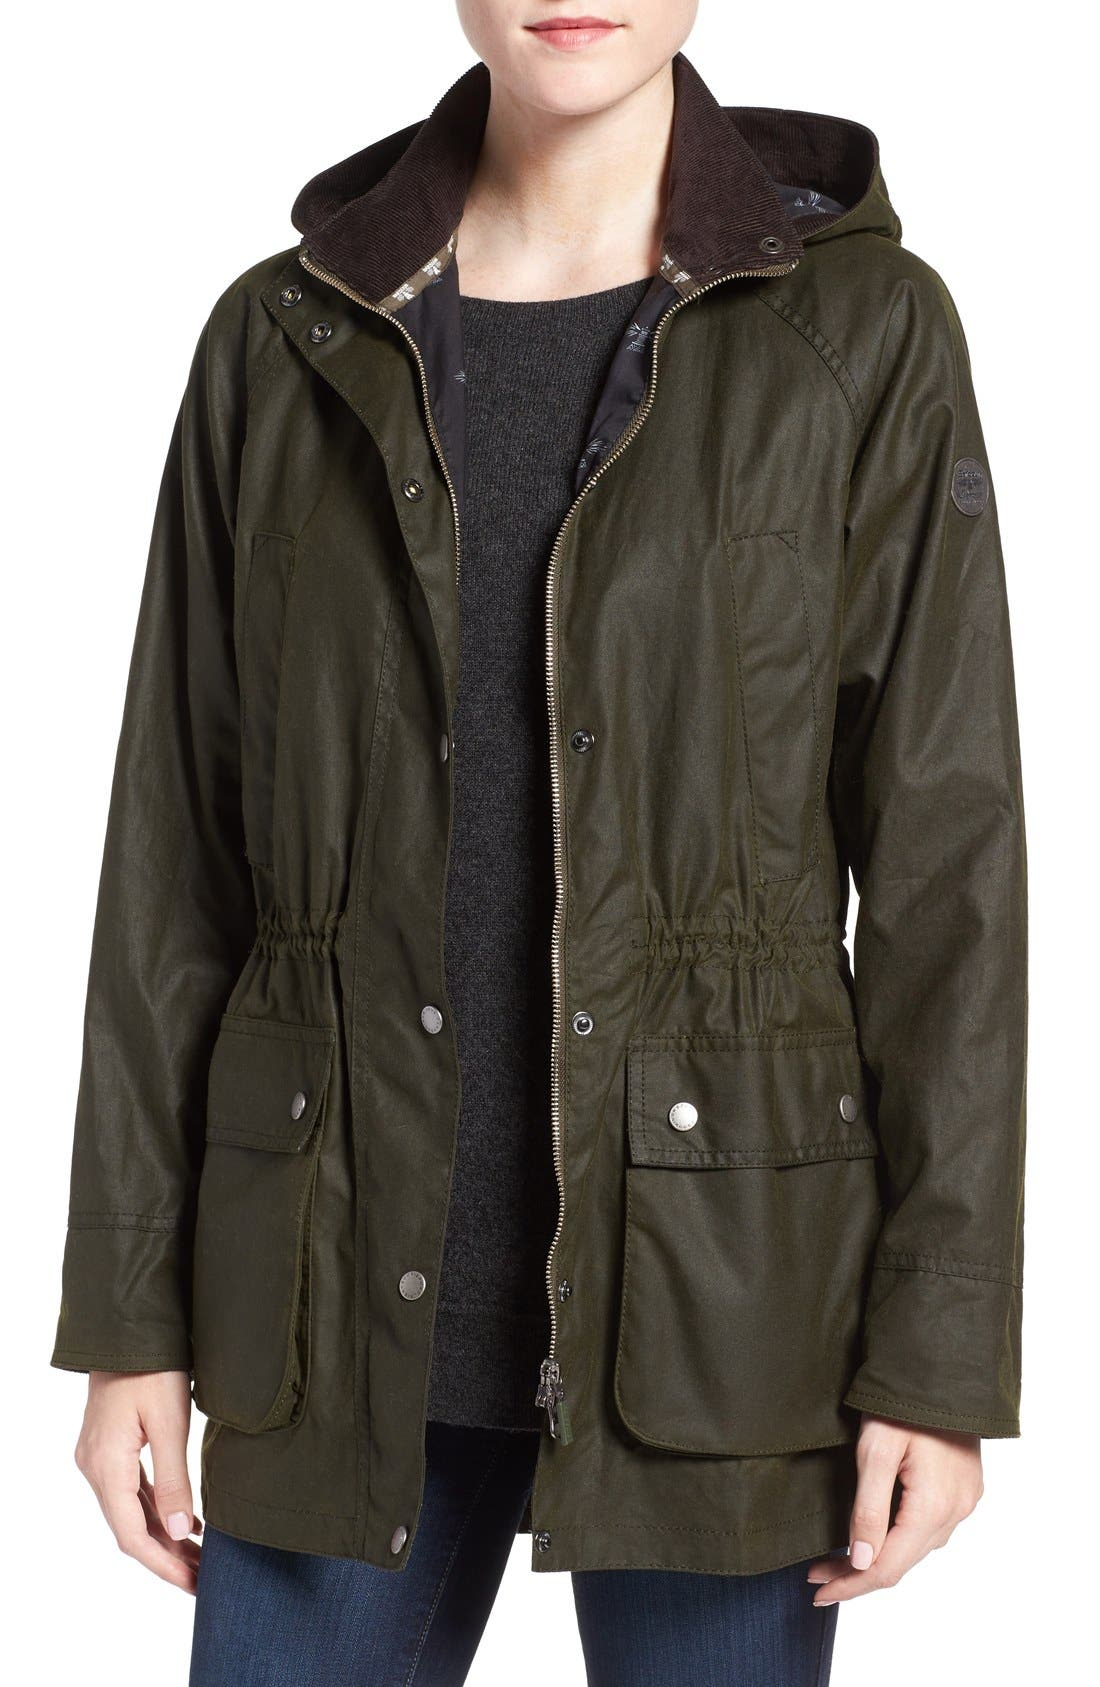 Alternate Image 1 Selected - Barbour Brae Waxed Cotton Parka